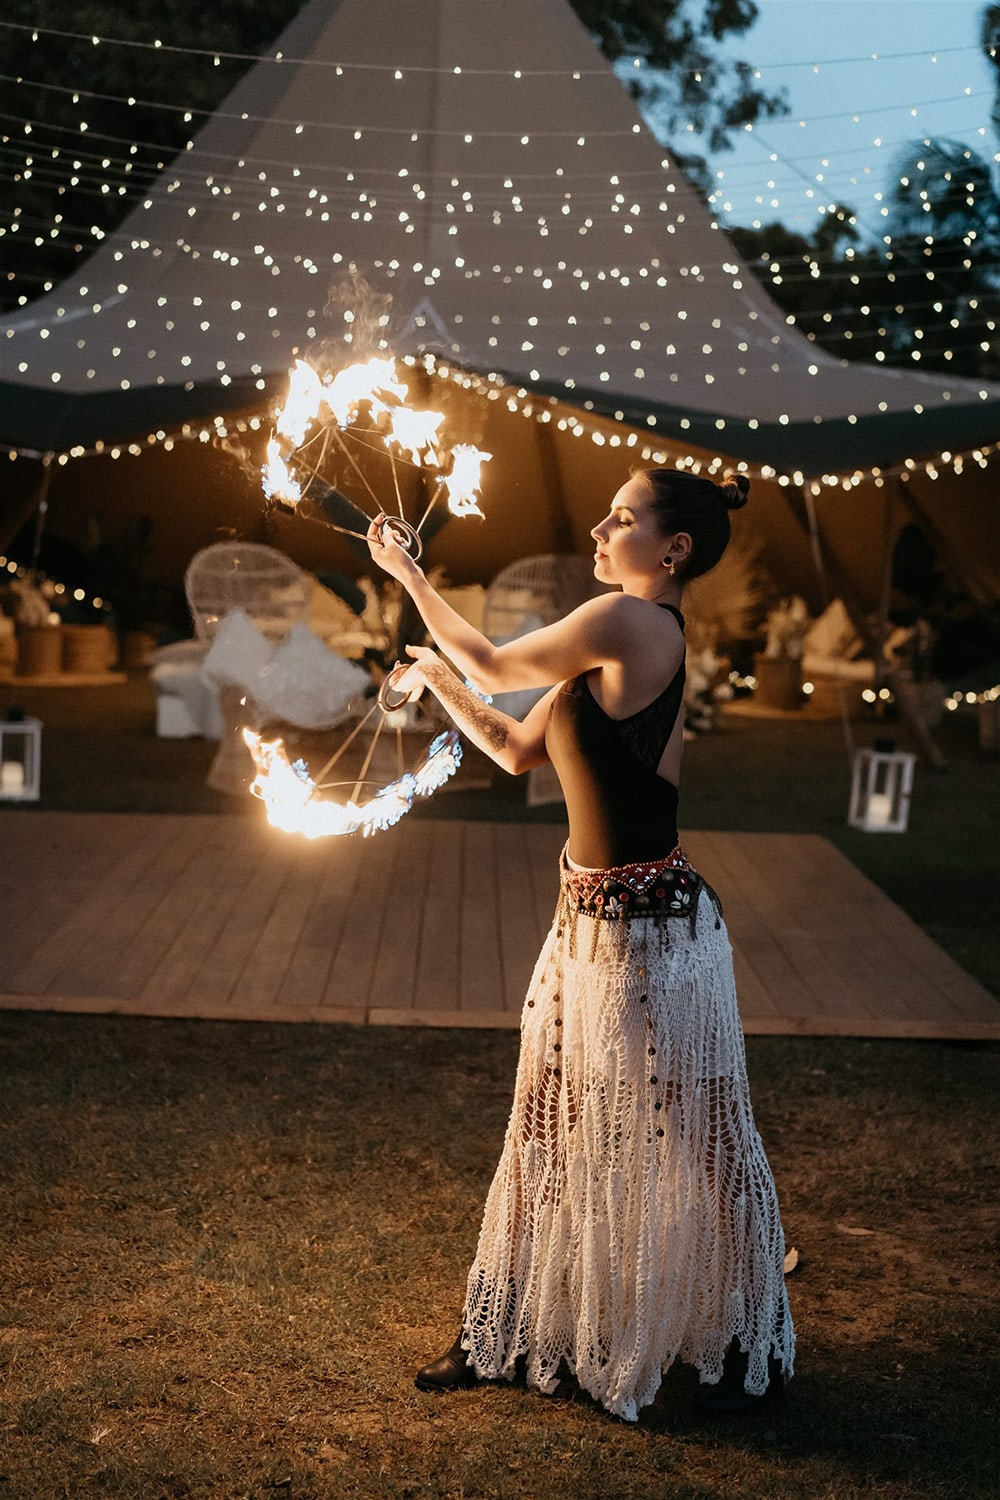 Outdoor Festival Bohemian Wedding Inspiration   A fire twirler performs as wedding entertainment in front of a canopy of fairy lights and large tipi styled with eclectic lounge seating for an outdoor boho wedding reception.   Photography: Shae Estella Photo